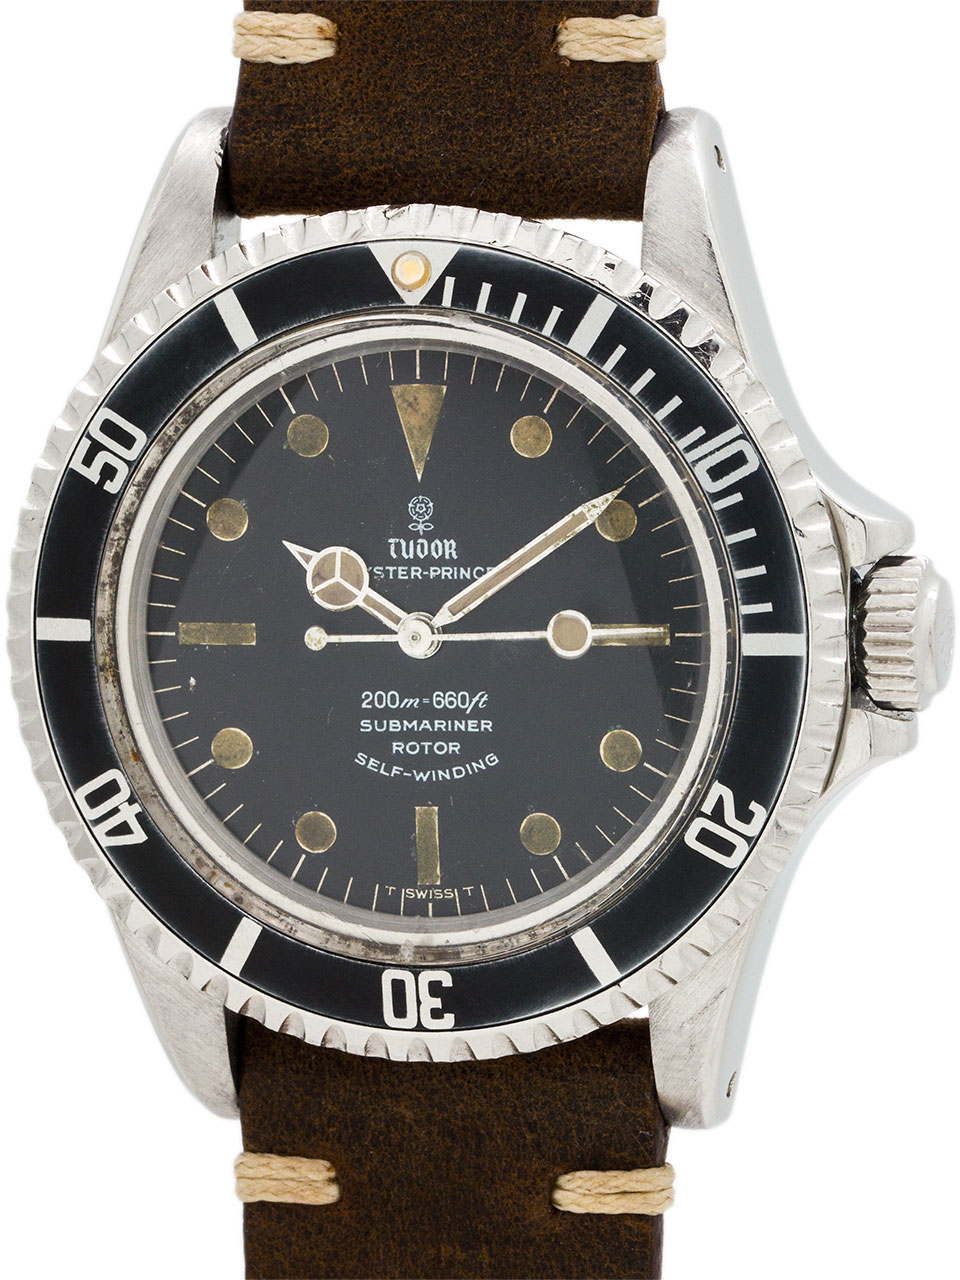 Tudor ref 7928 Submariner Stainless Steel circa 1966